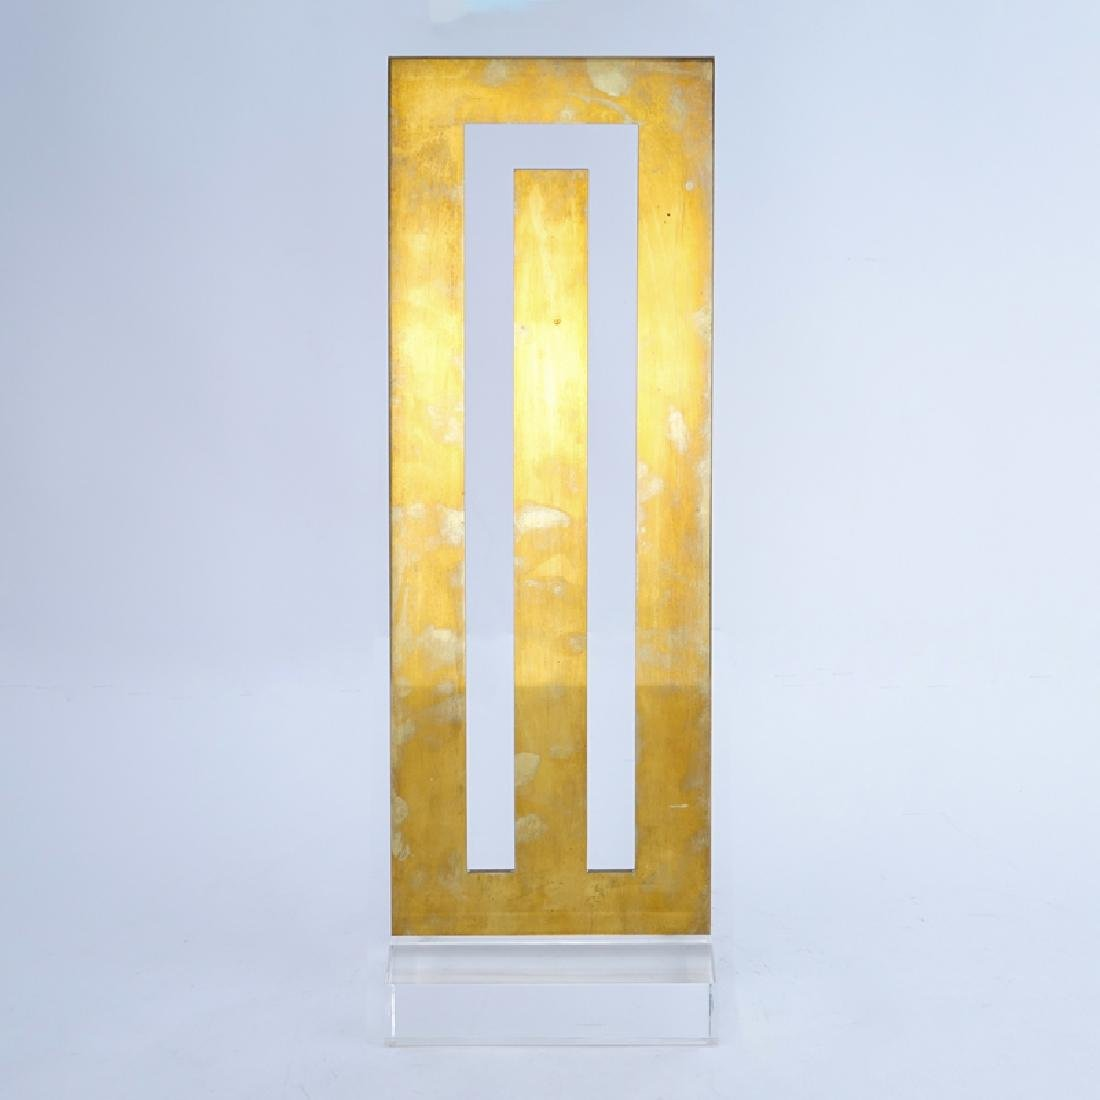 Stephen Edlich, American (1944-1989) Brass and Lucite